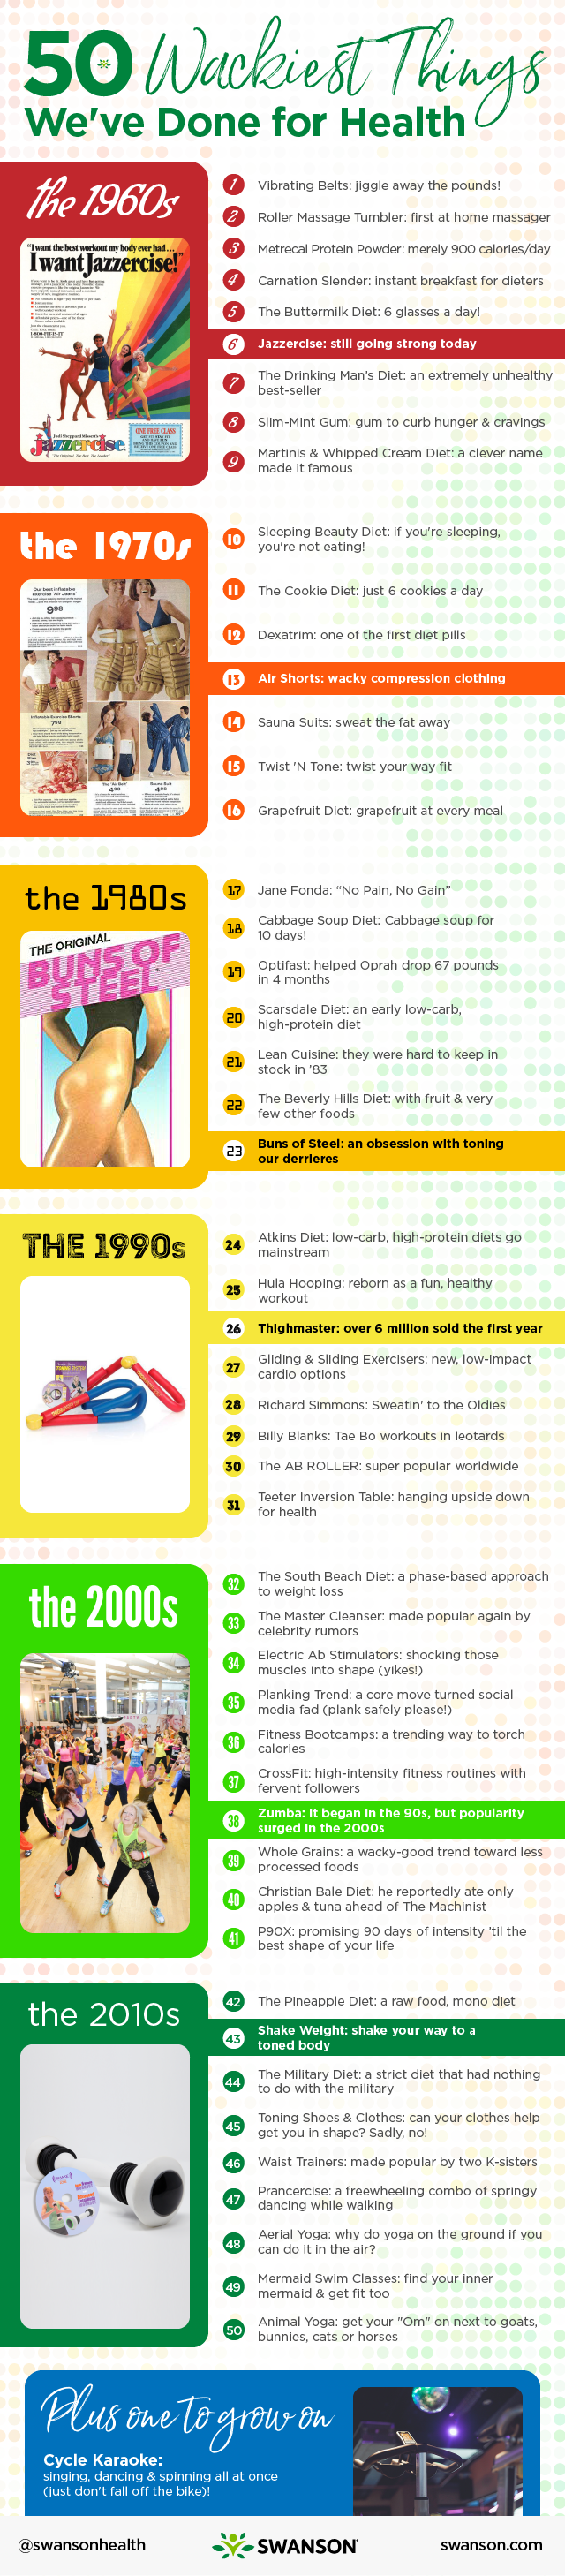 50 Wackiest Things We've Done for Health Infographic